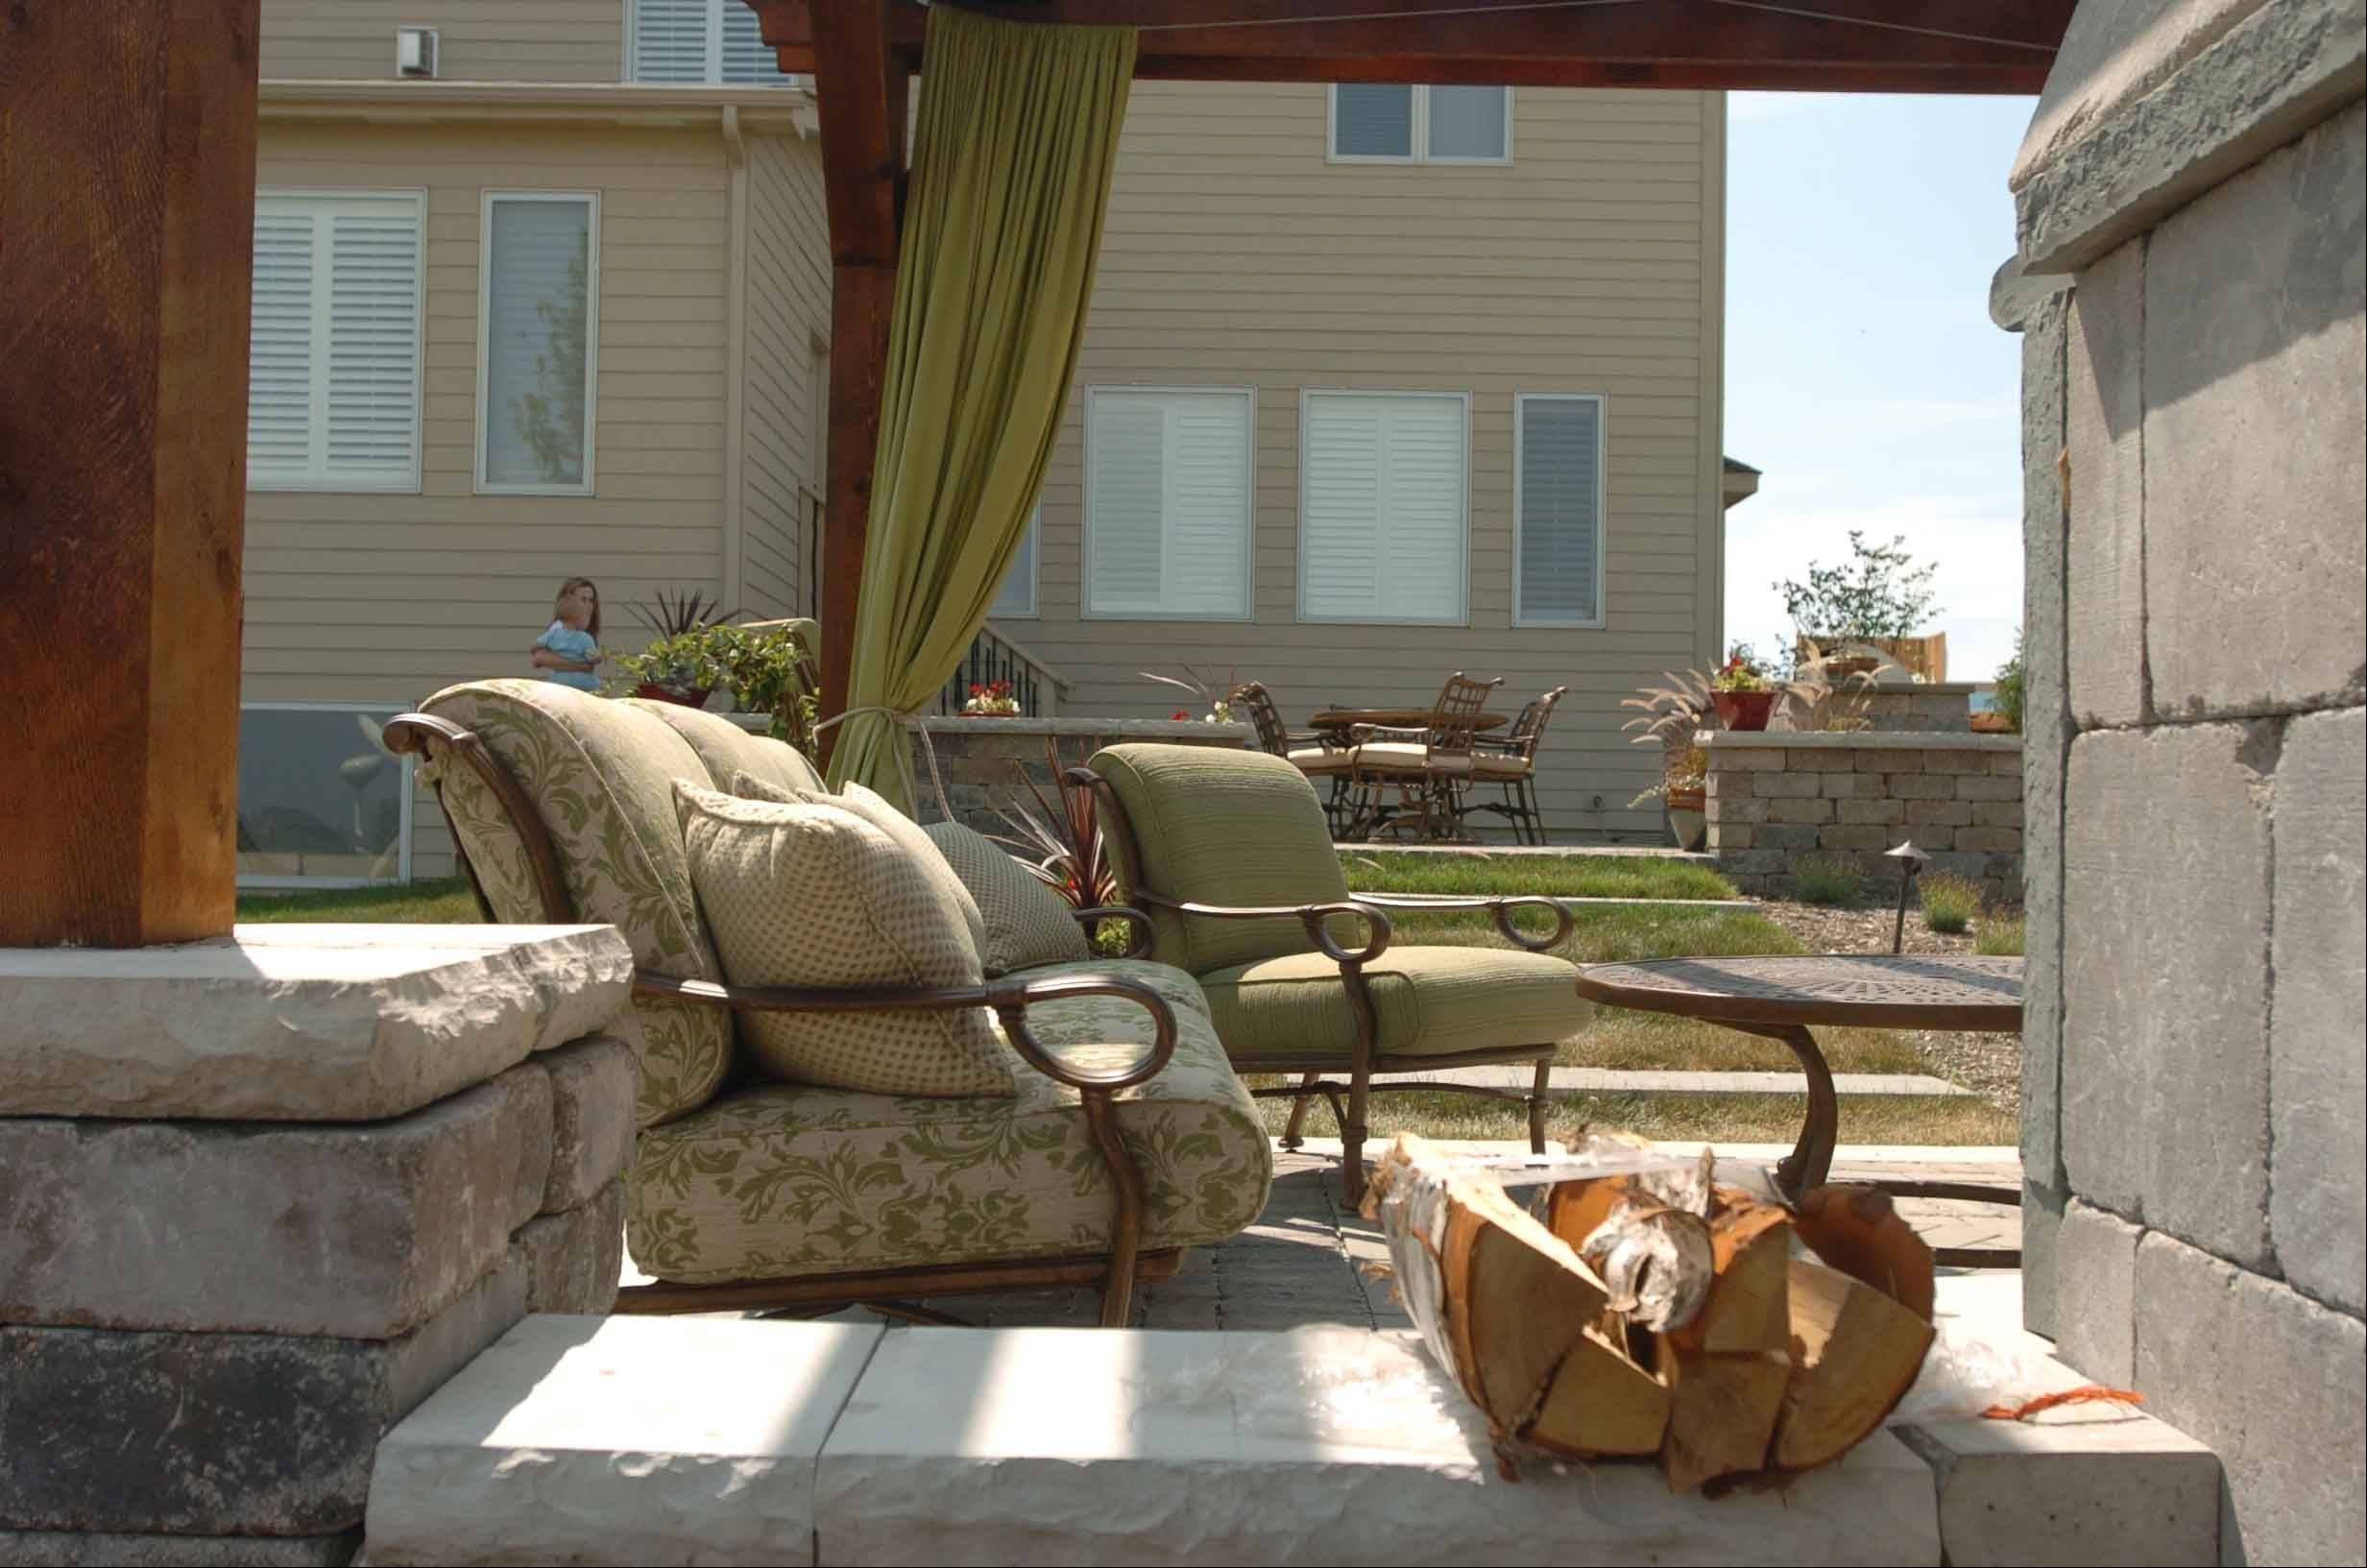 The Jakovich home in Plainfield has plenty of outdoor furniture.